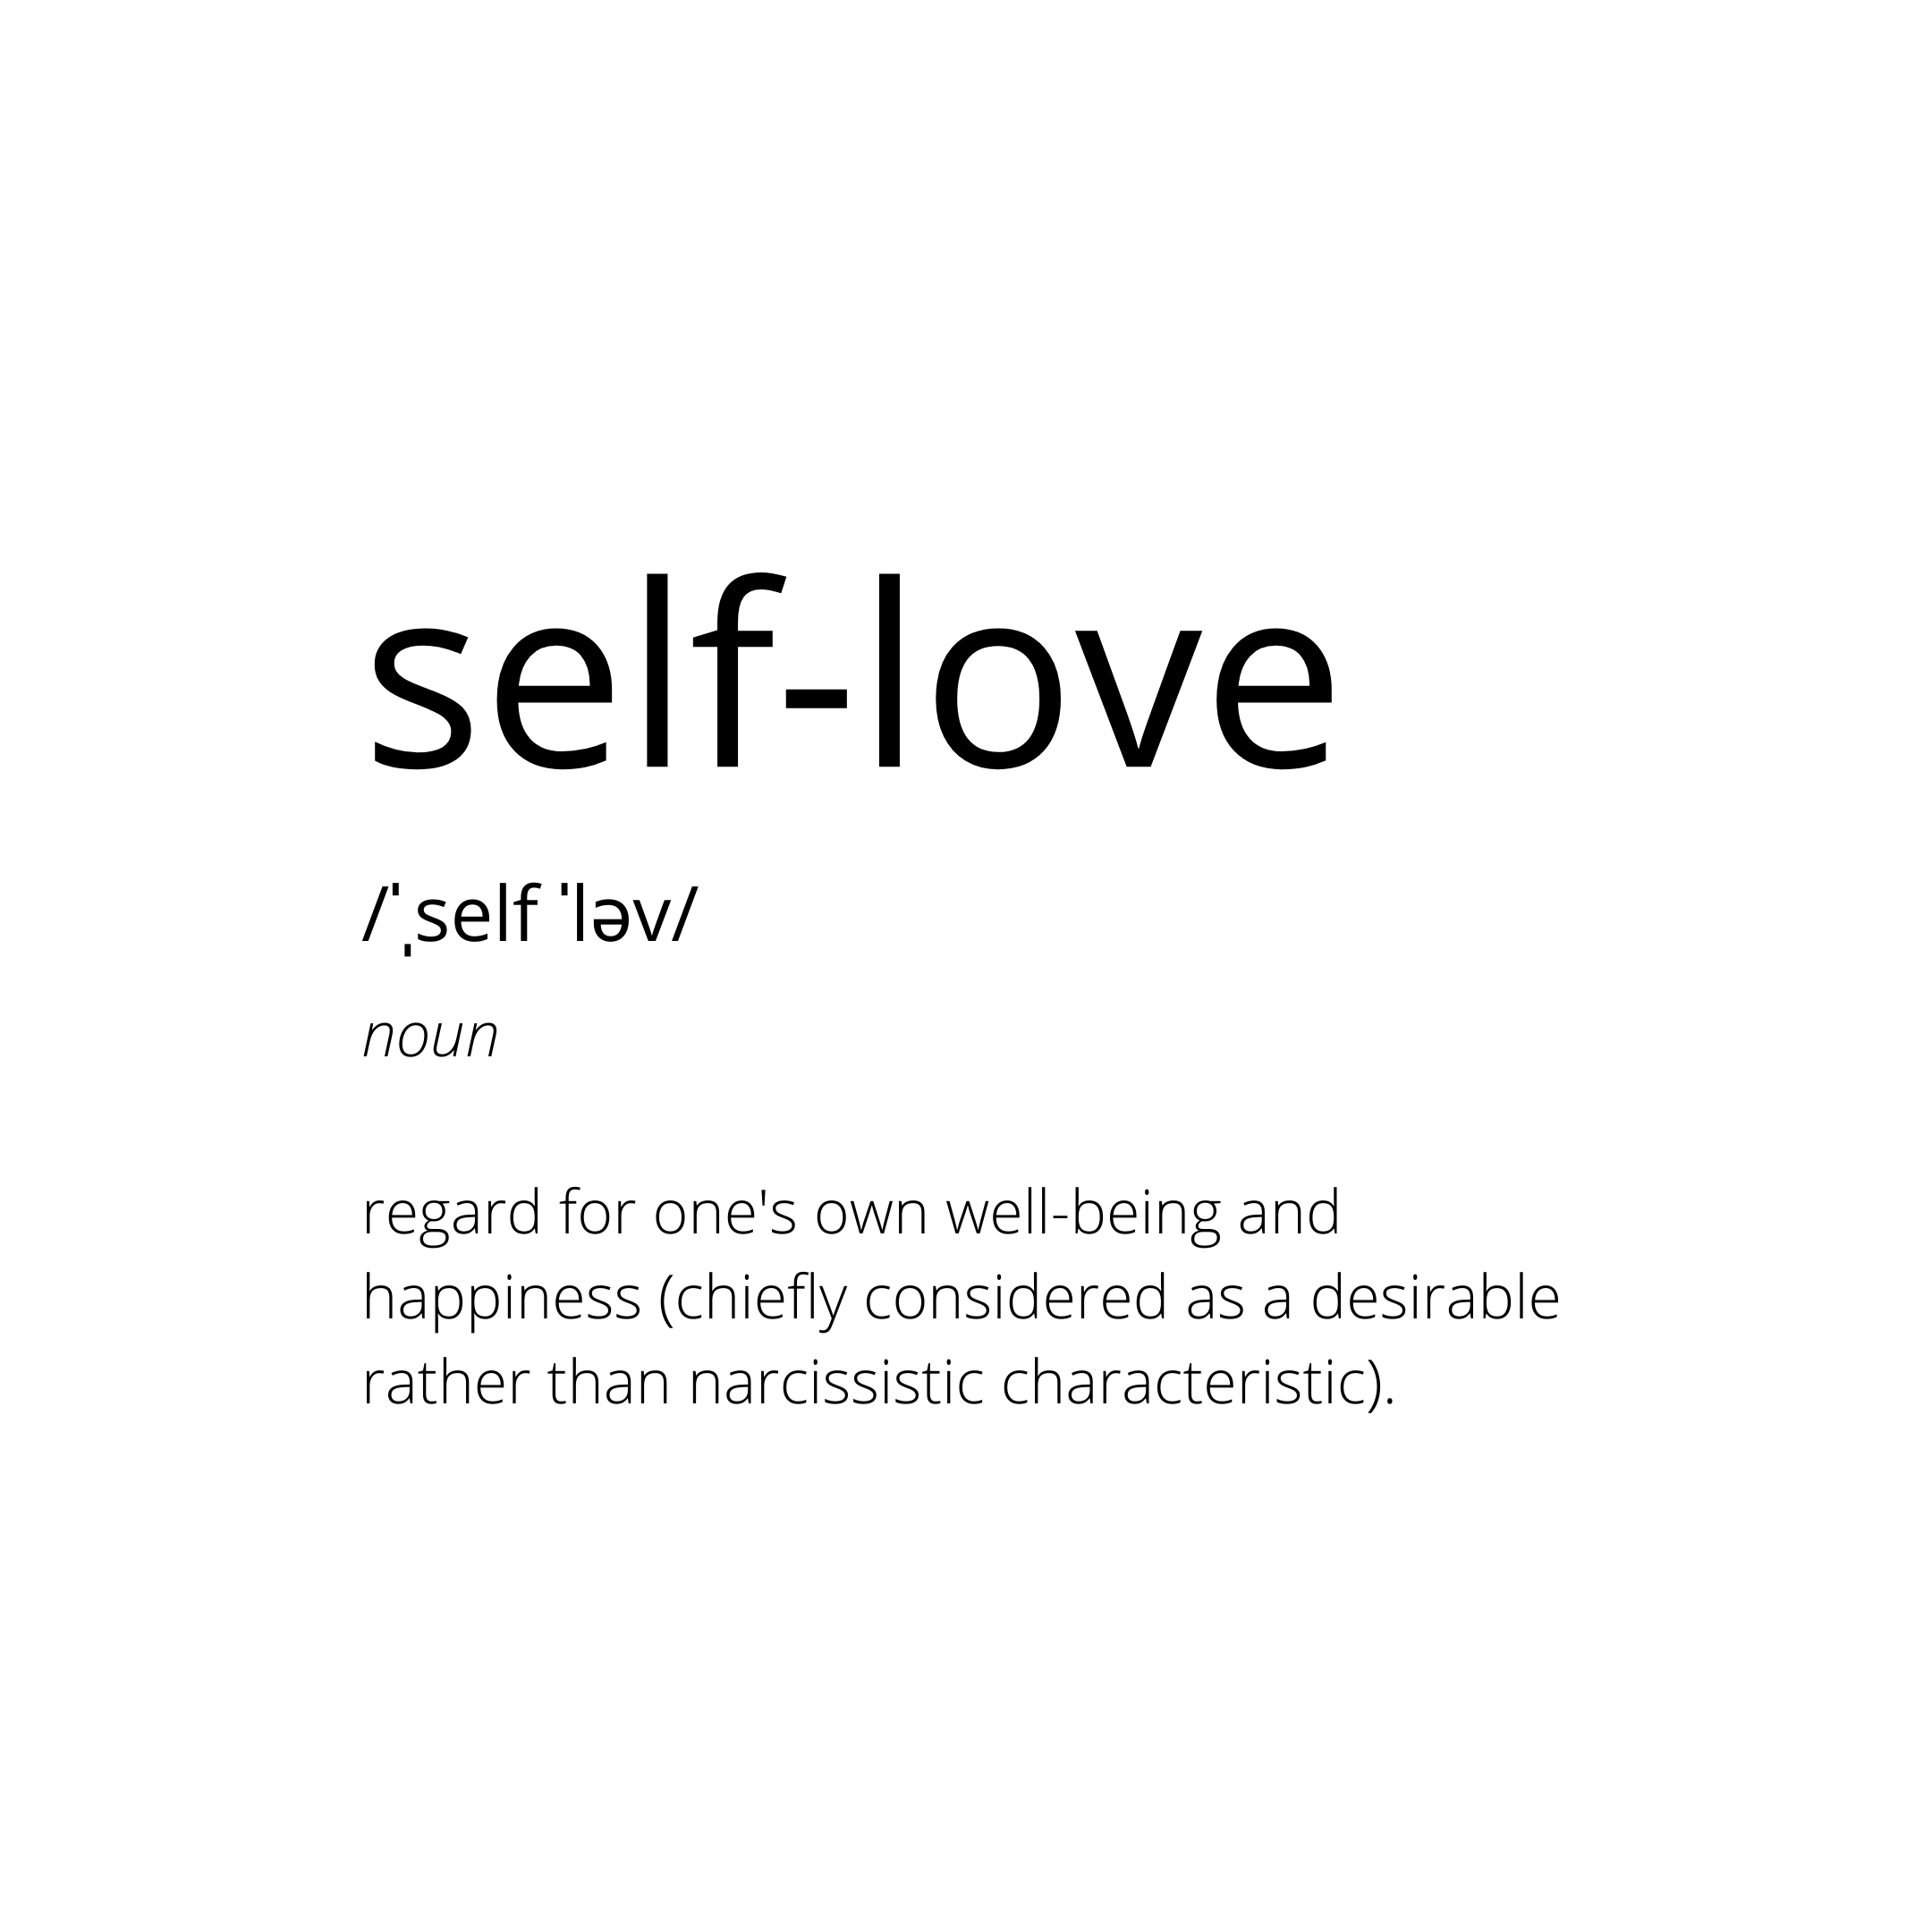 Definition of self-love.